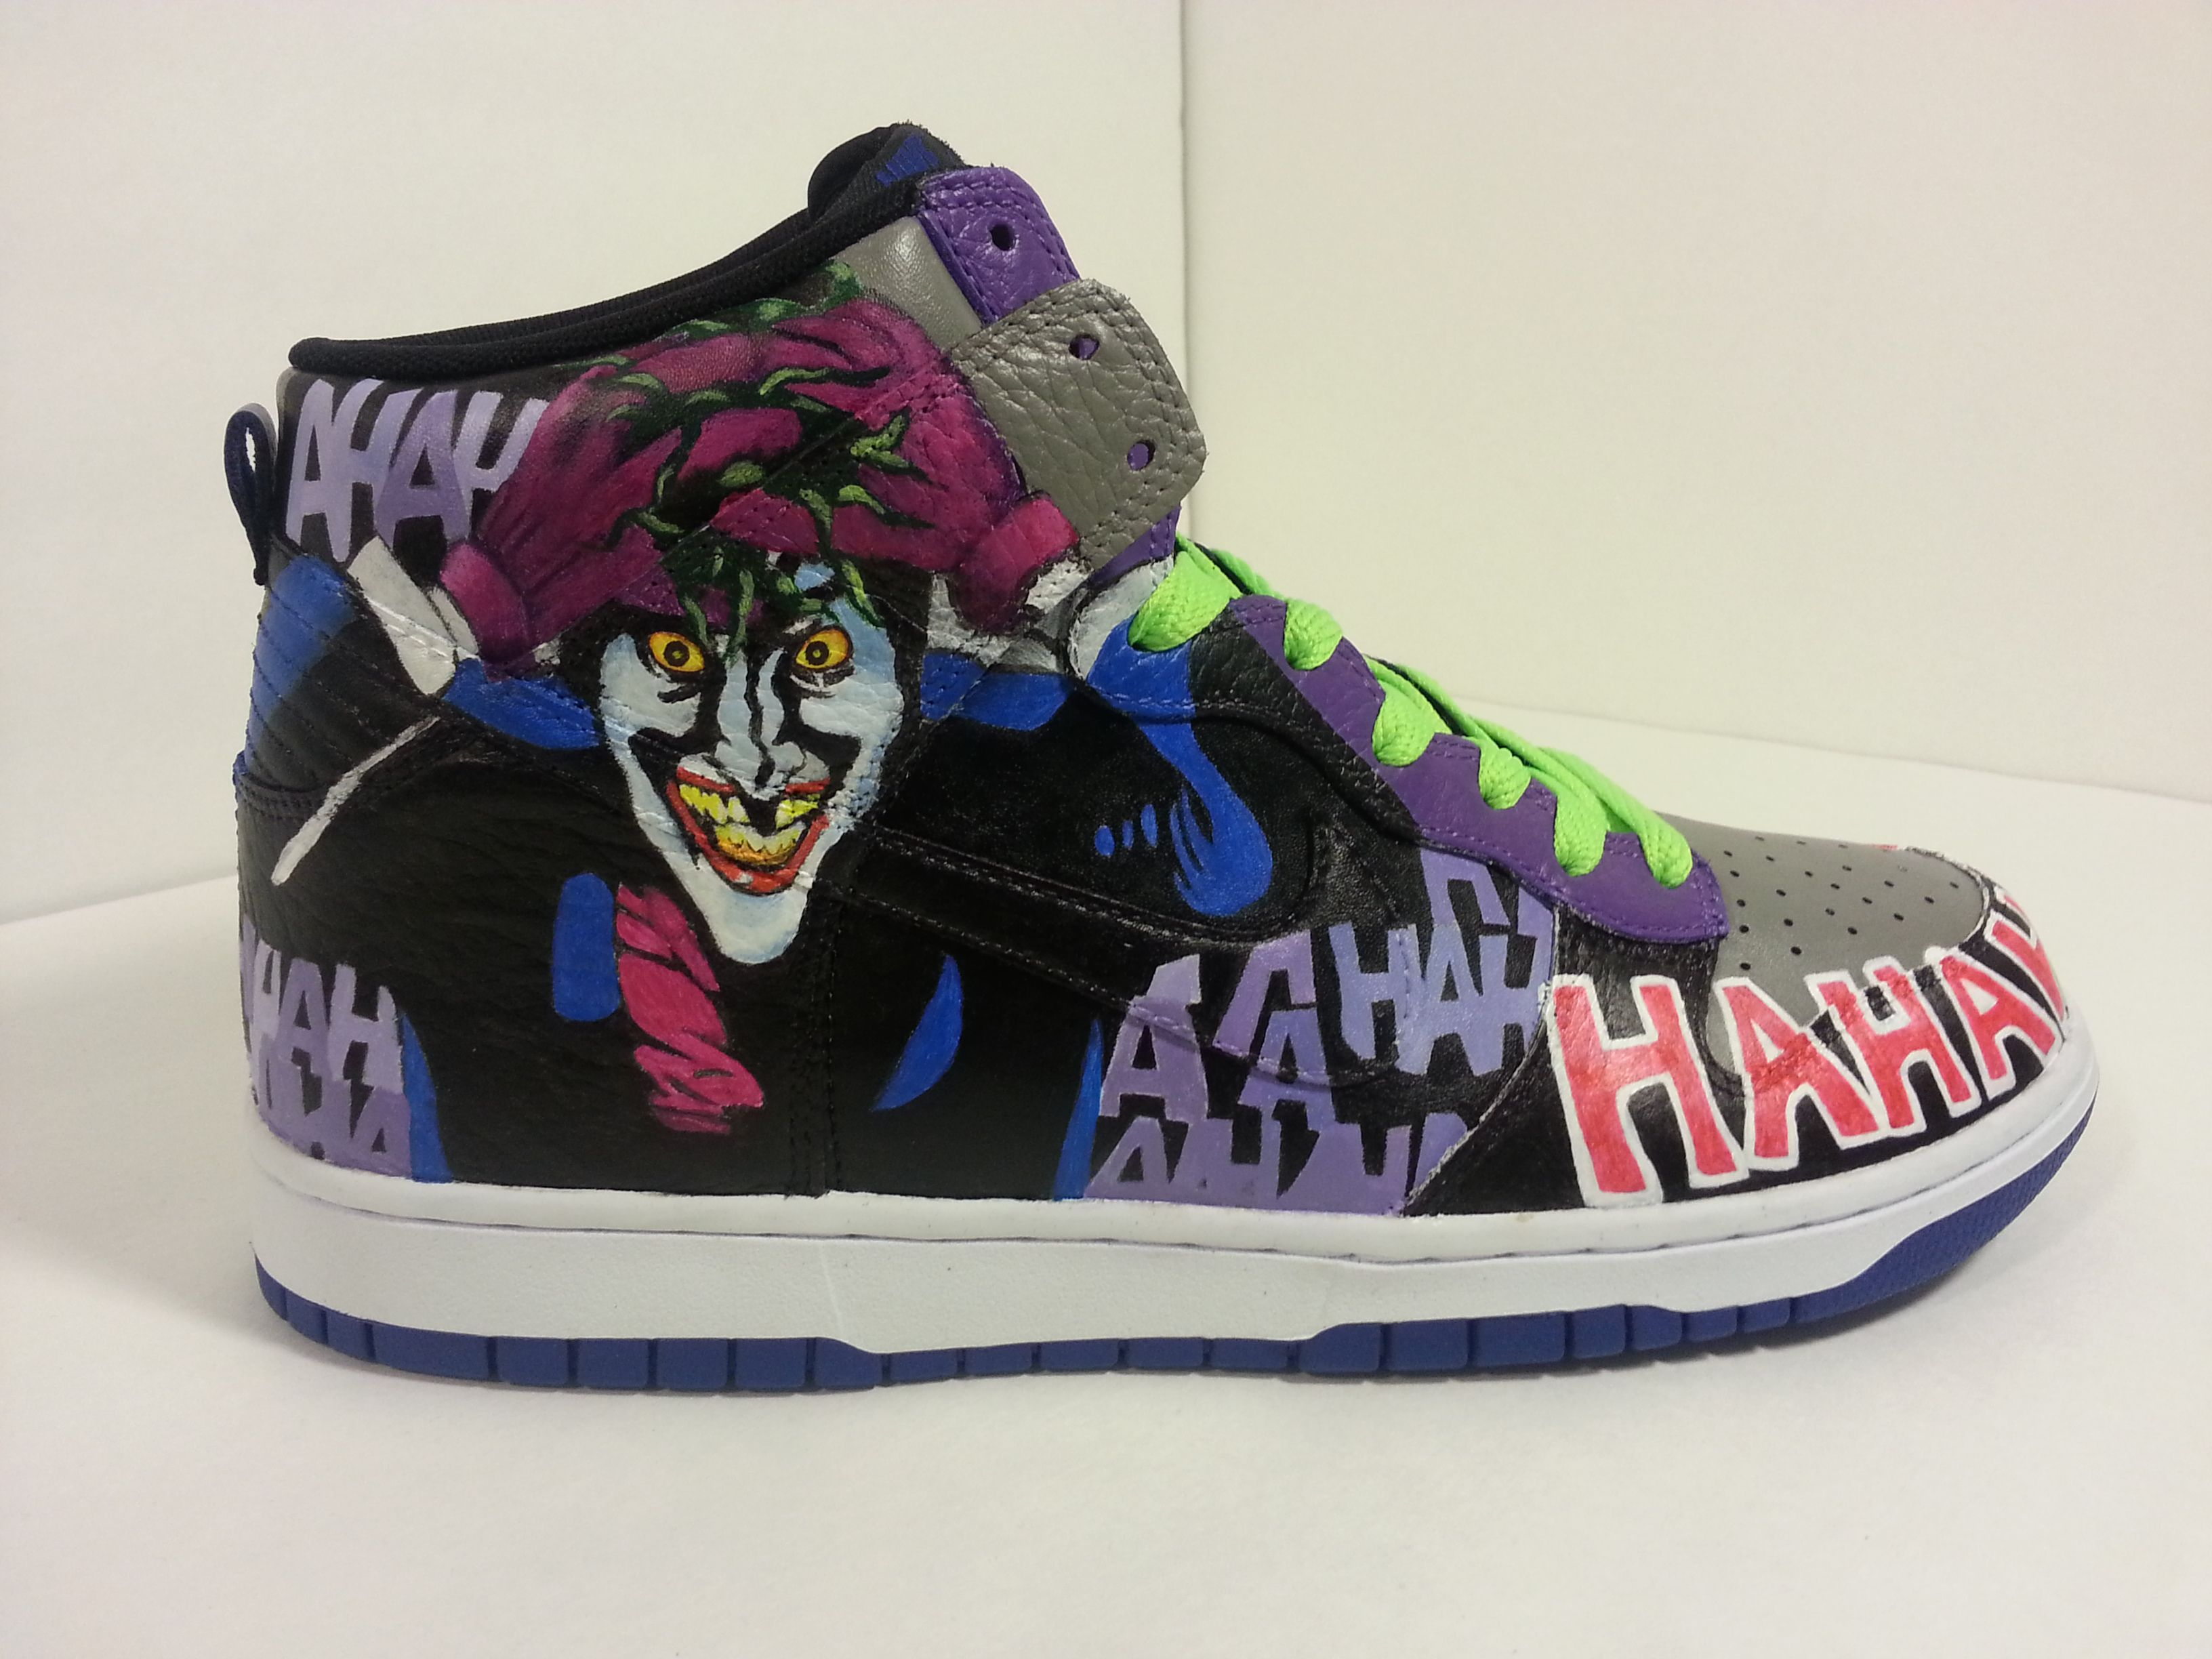 new arrival 698c6 94f5a Joker hand painted Custom Nike Dunks Batman Shoes, Hype Shoes, Custom  Painted Shoes,